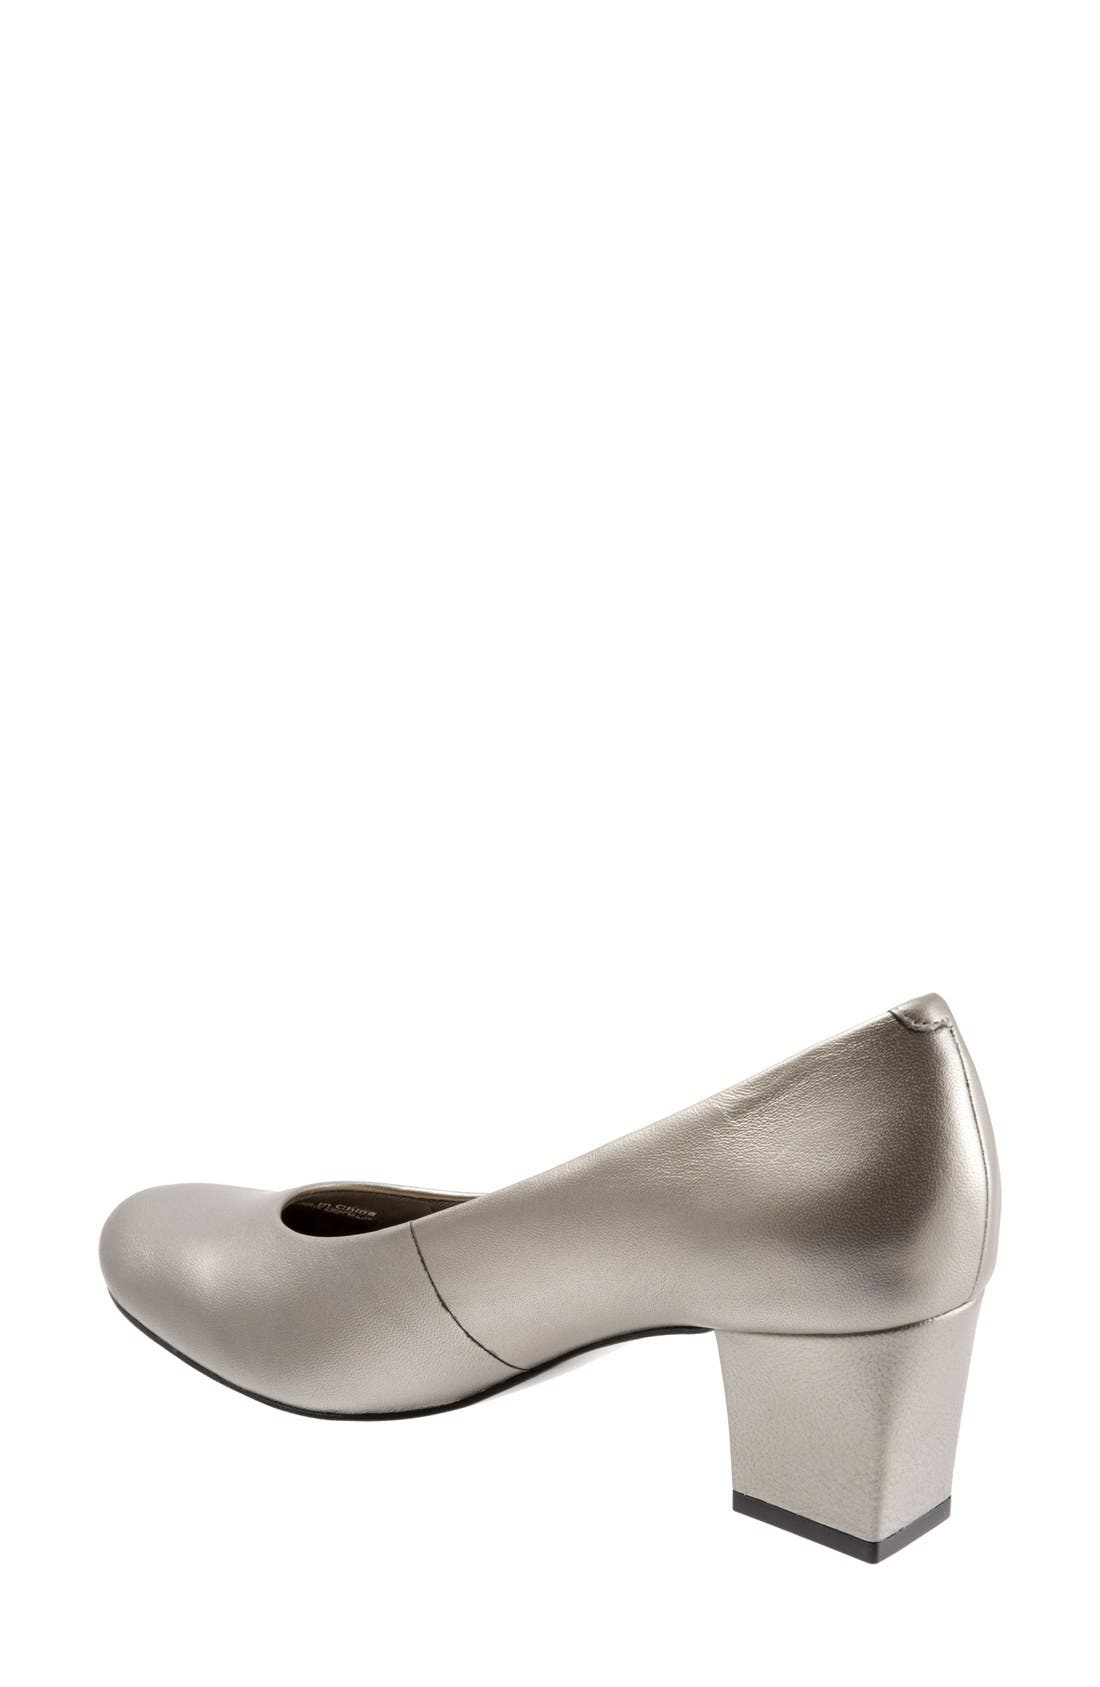 Alternate Image 2  - Trotters 'Candela' Pump (Women)